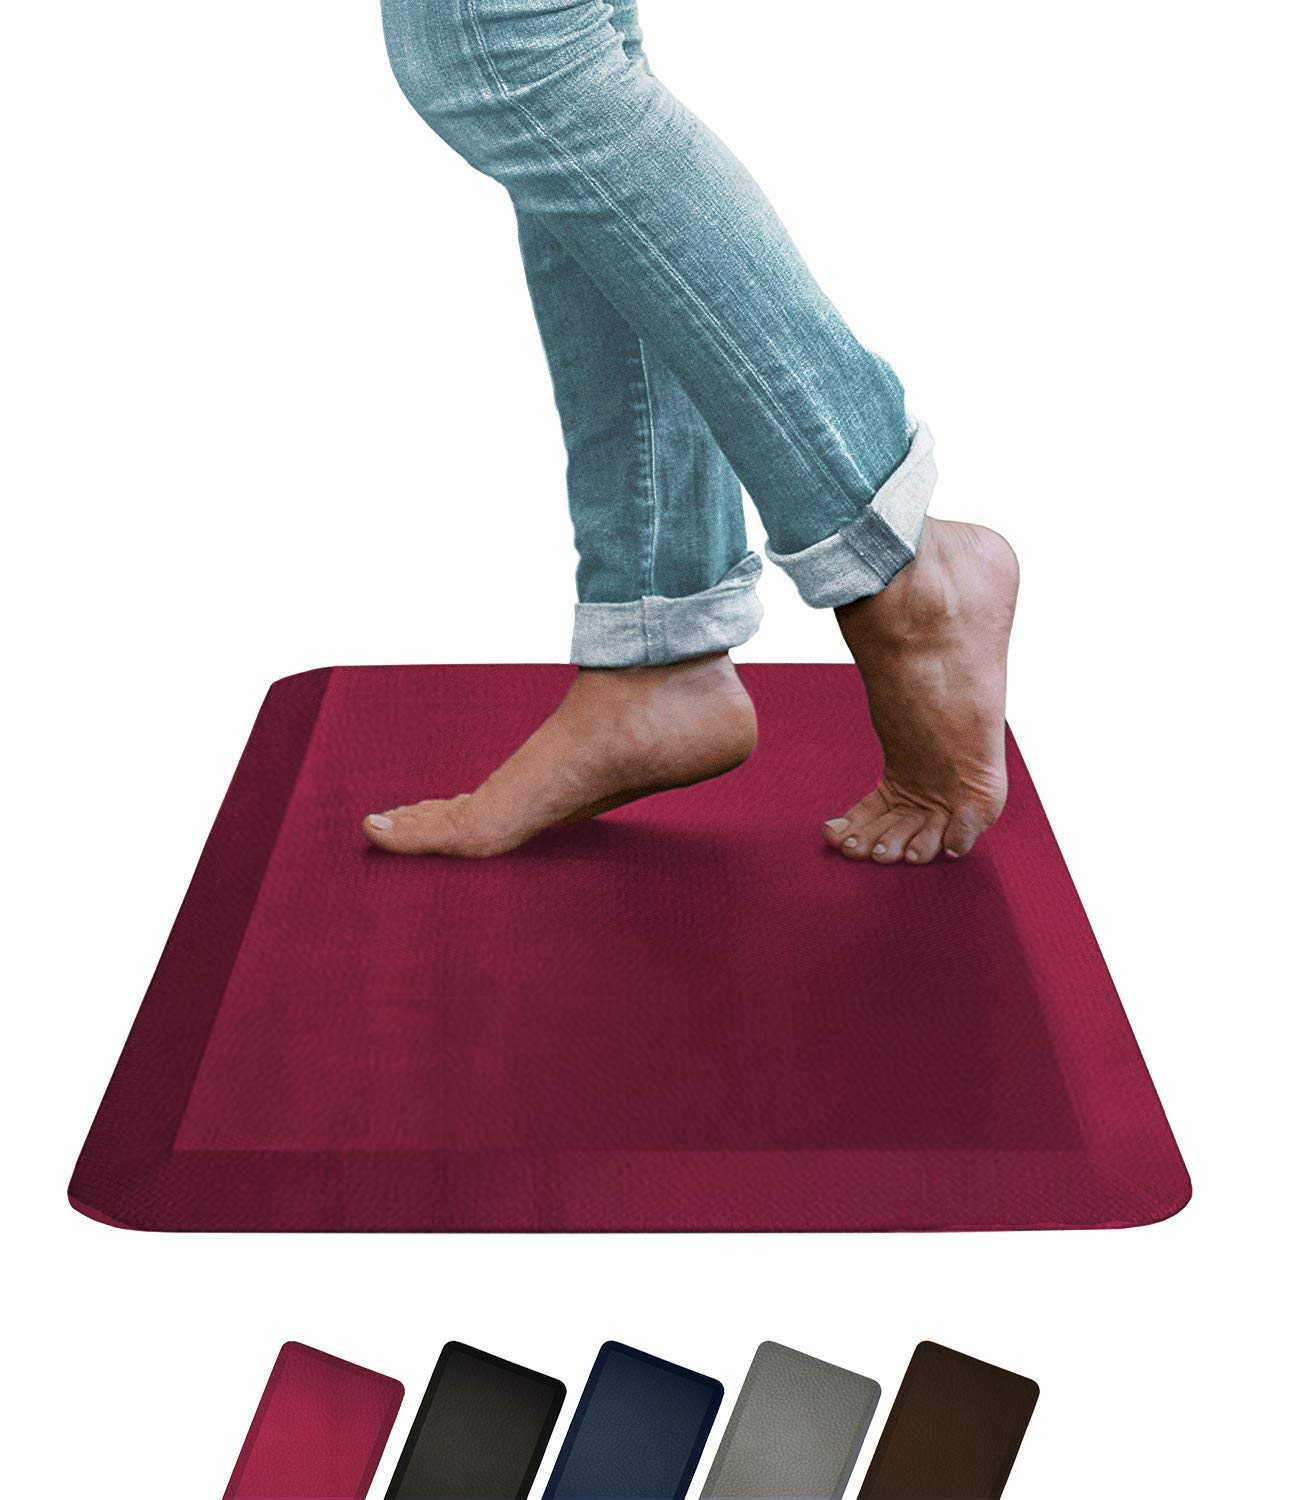 Oasis by Sky Mats, Leather Grain Comfort Anti Fatigue Mat, 5 Colors and 3 Sizes, Perfect for Kitchens and Standing Desks (20x32x3/4-Inch, Black)